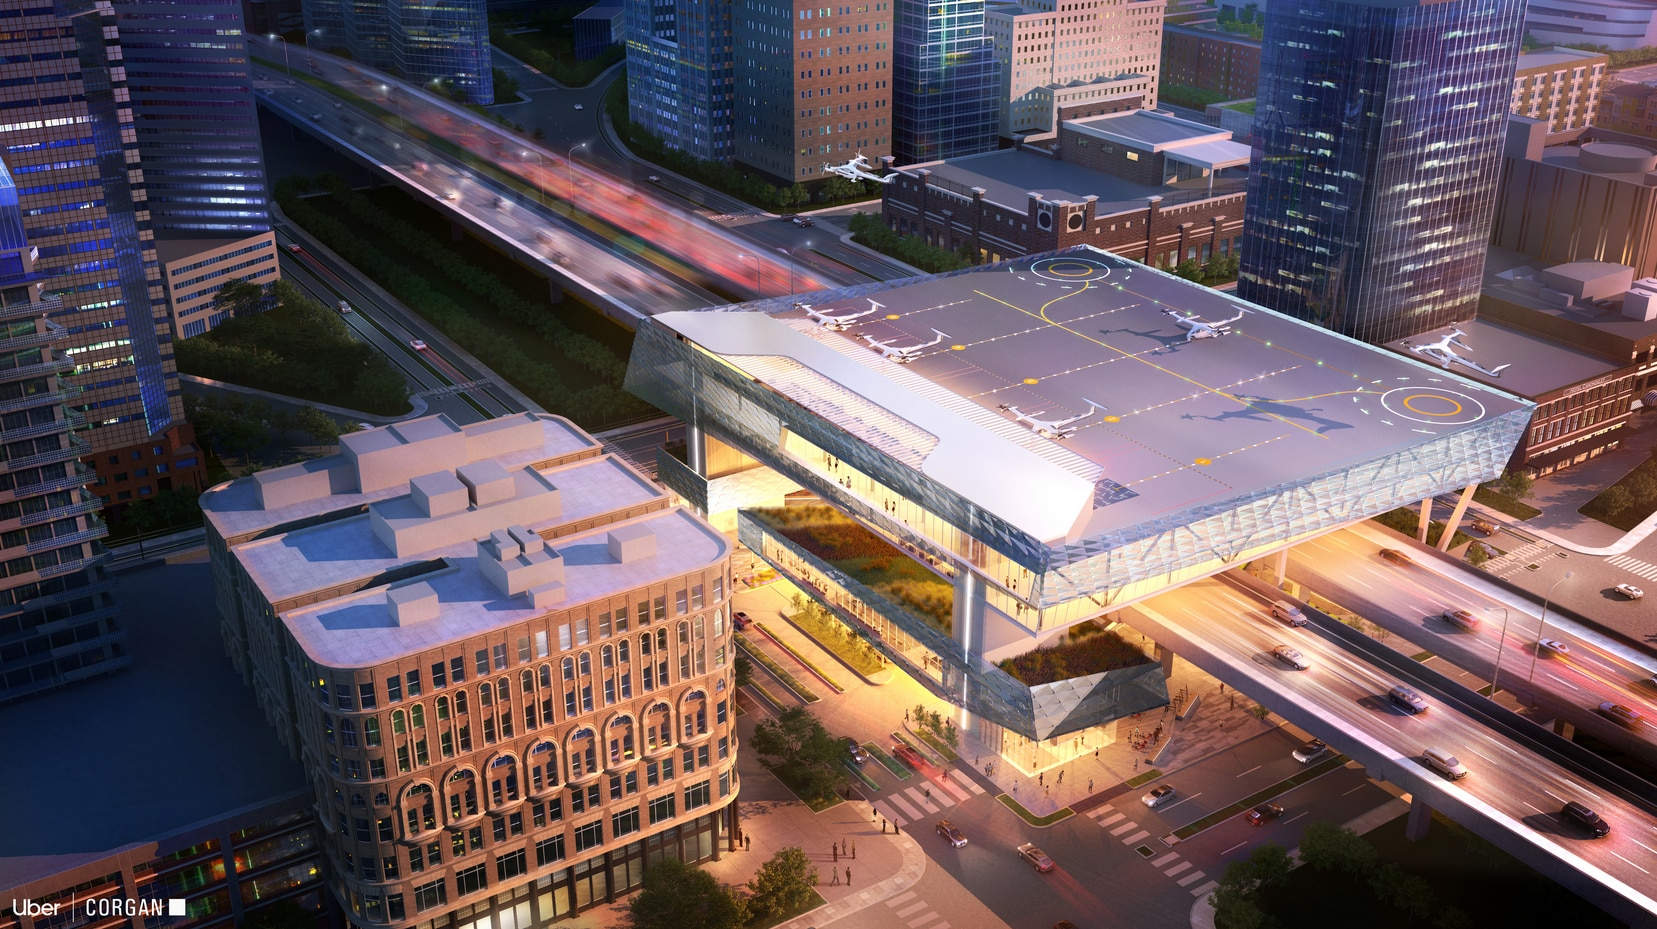 Its downtown Dallas concept is shown over a highway, tying future travel into current transportation routes.